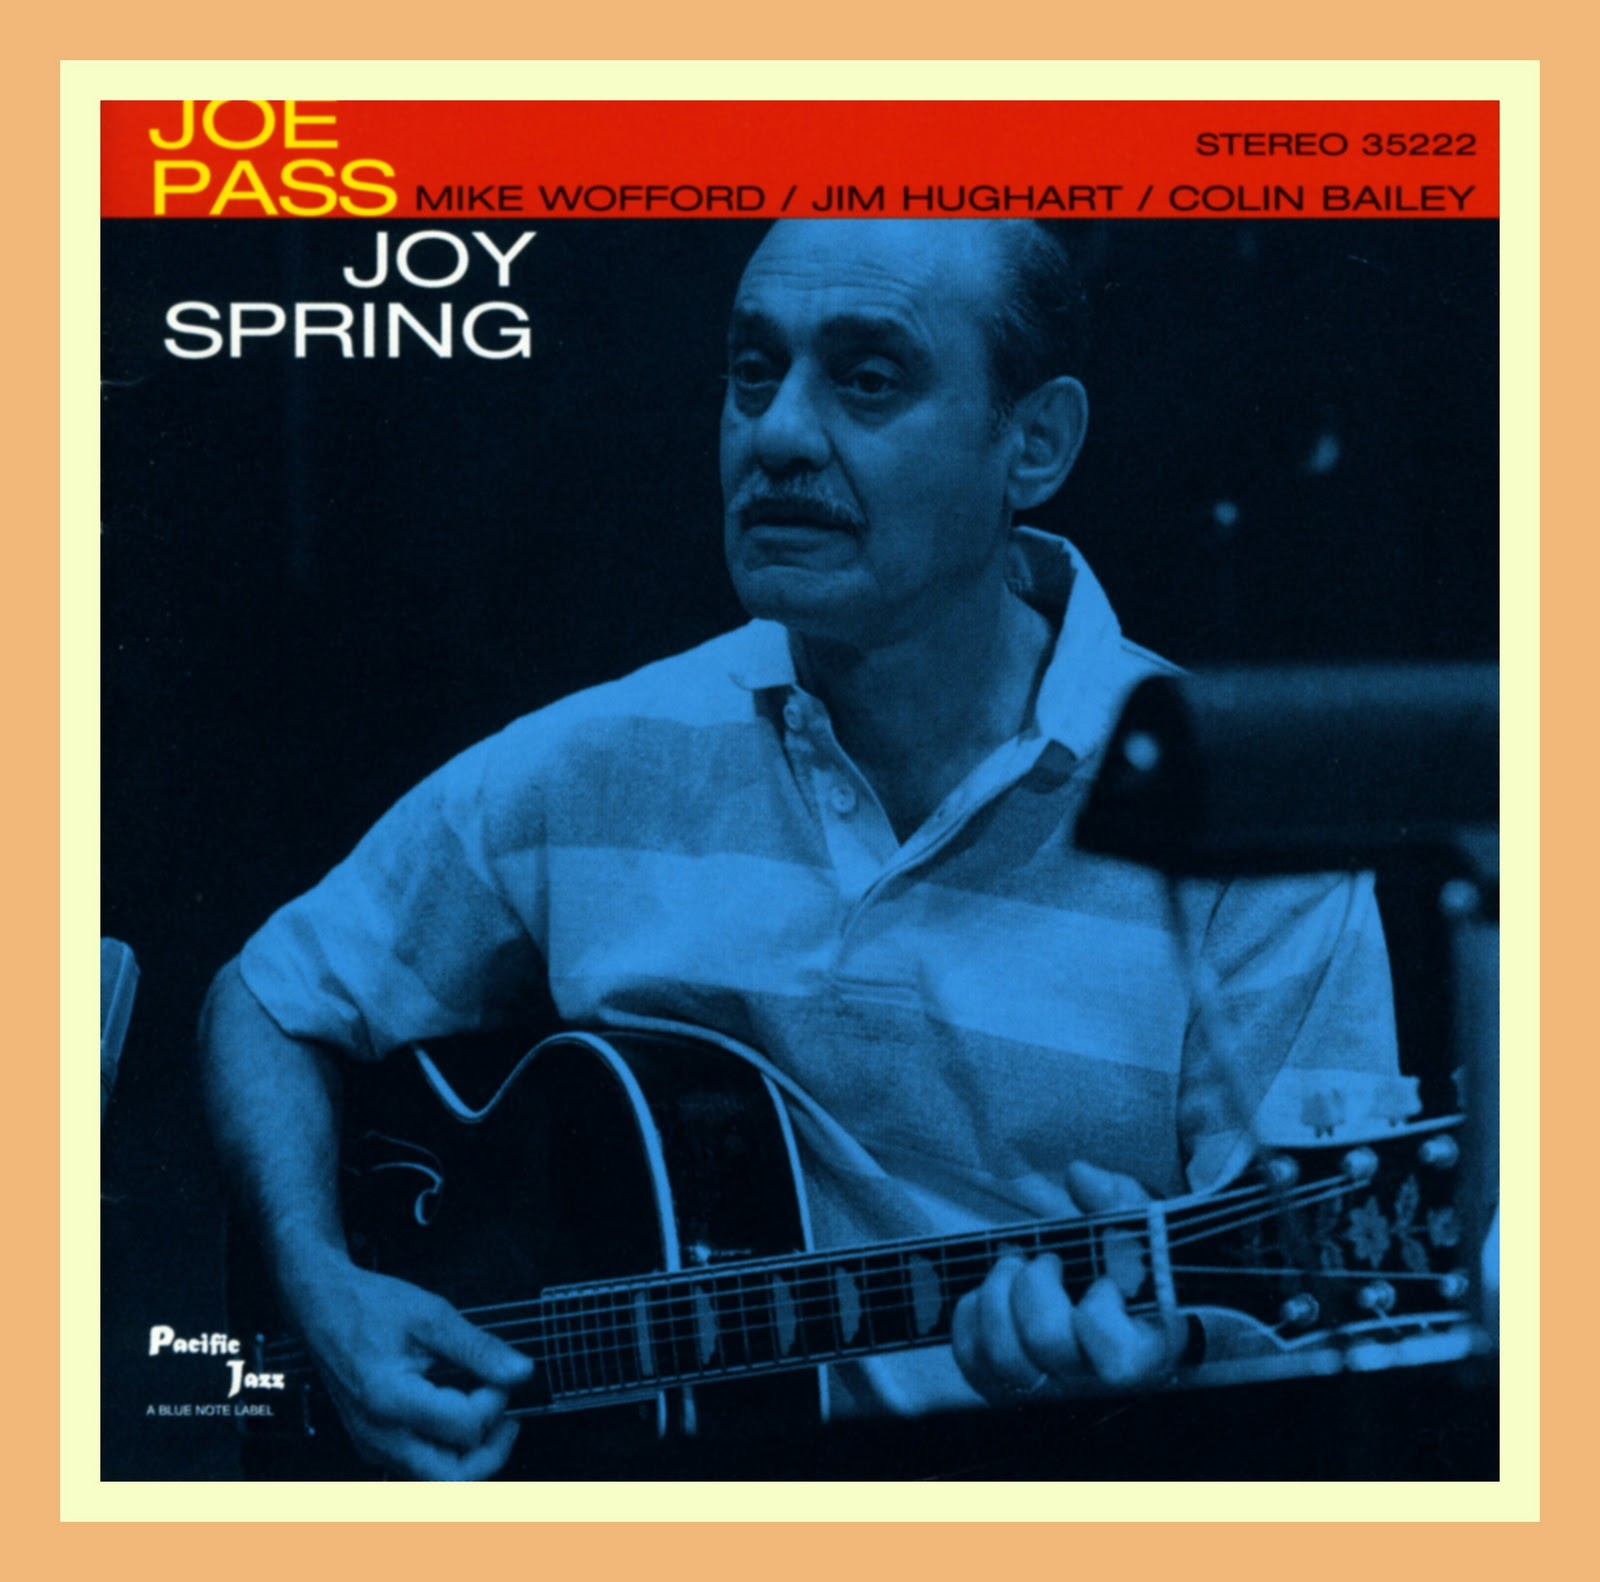 Joe Pass 12 String Guitar Great Motion Picture Themes